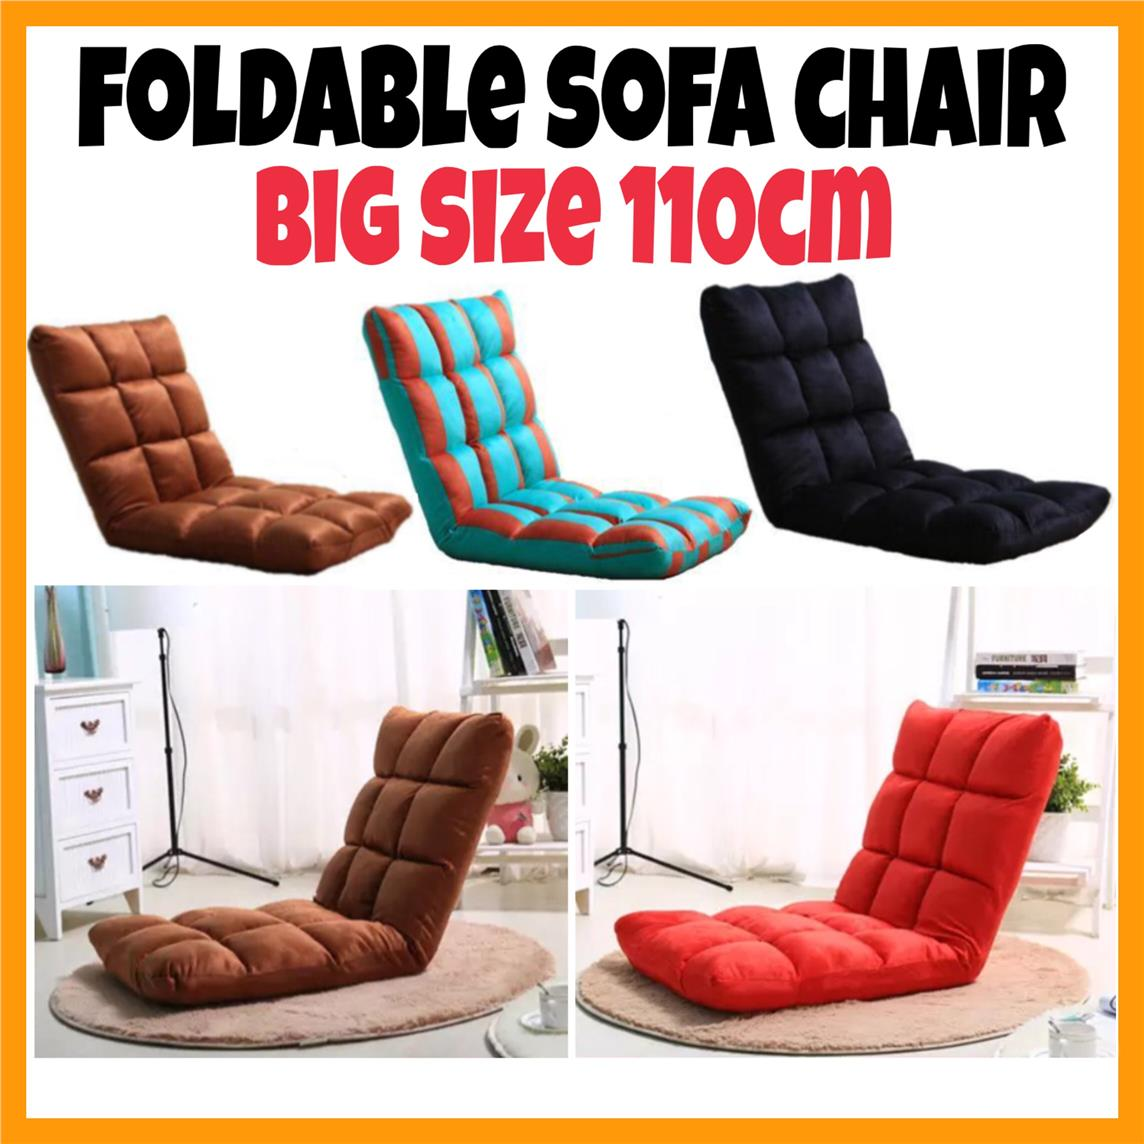 baby sofa chair malaysia seattle house of fraser big size 110cm bed f end 8 2020 12 15 am